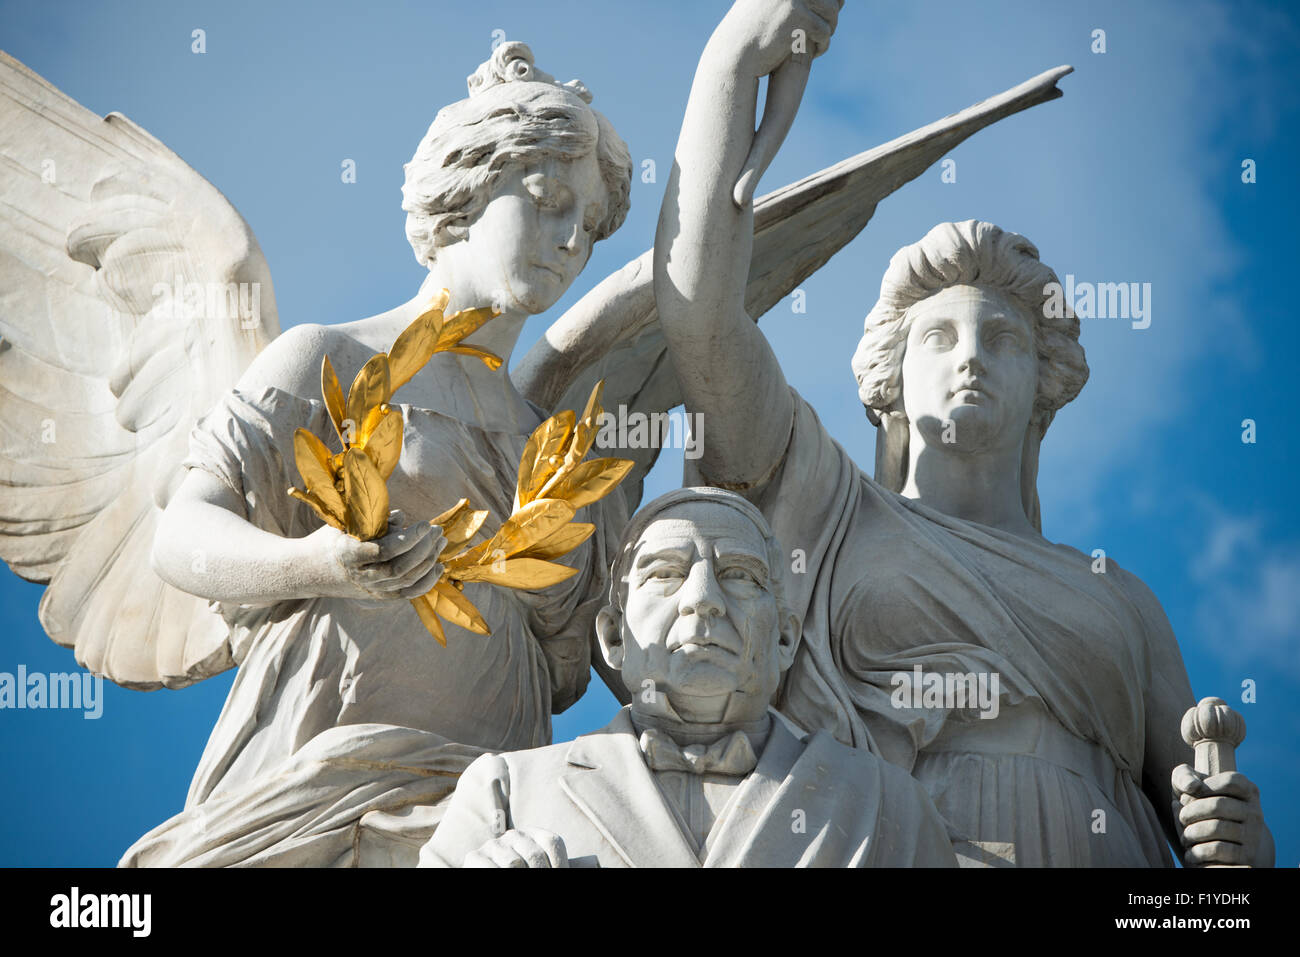 Crowning statue photos crowning statue images alamy